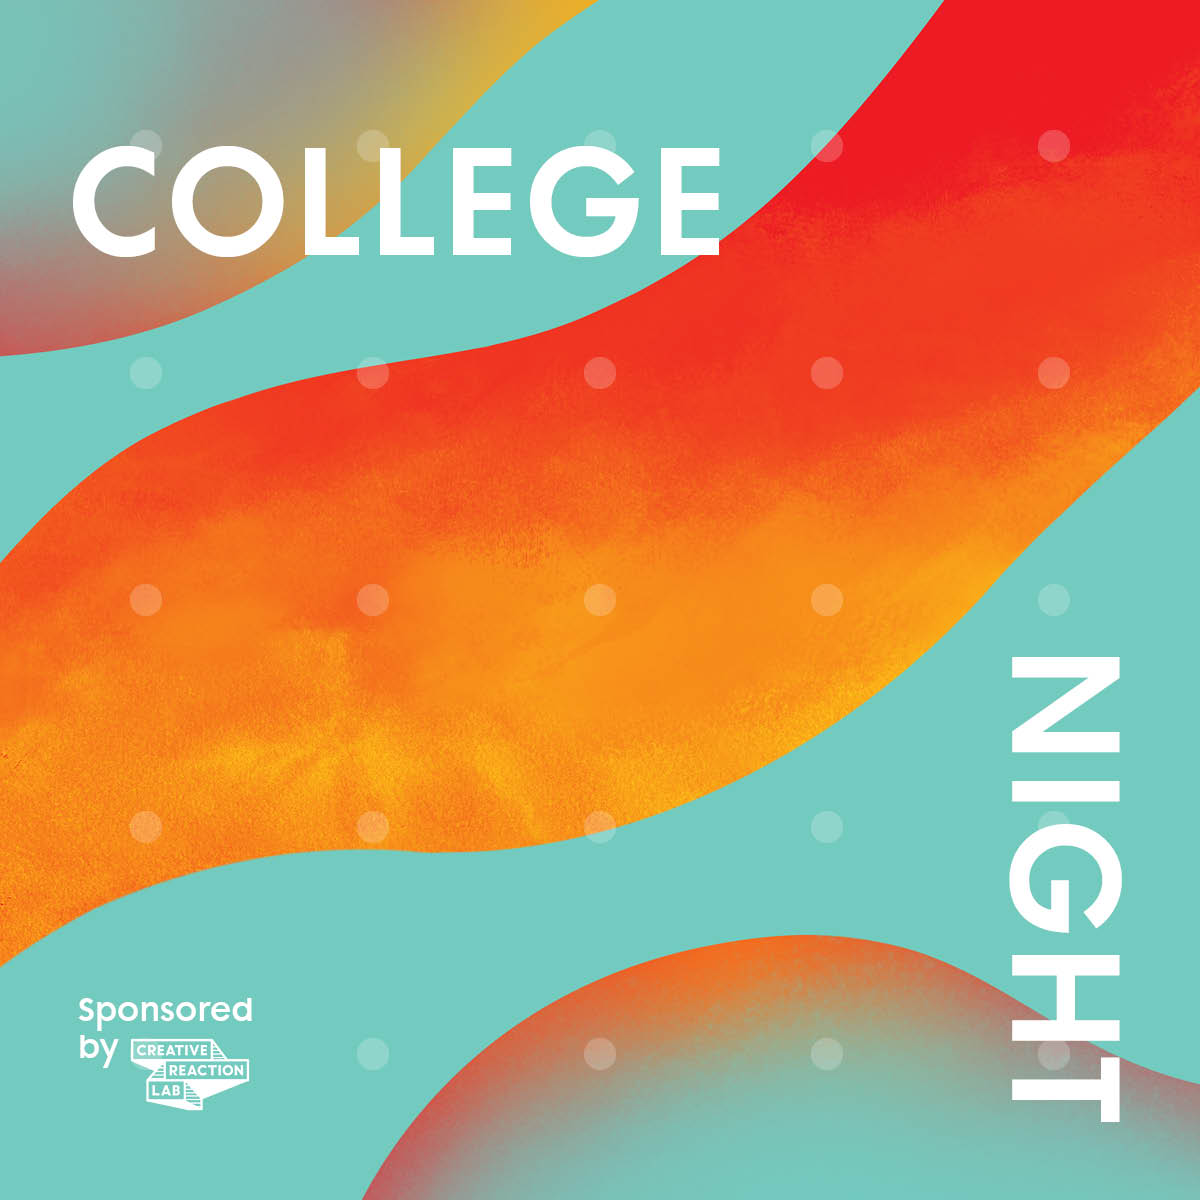 teal and orange waves announcing college night in white text